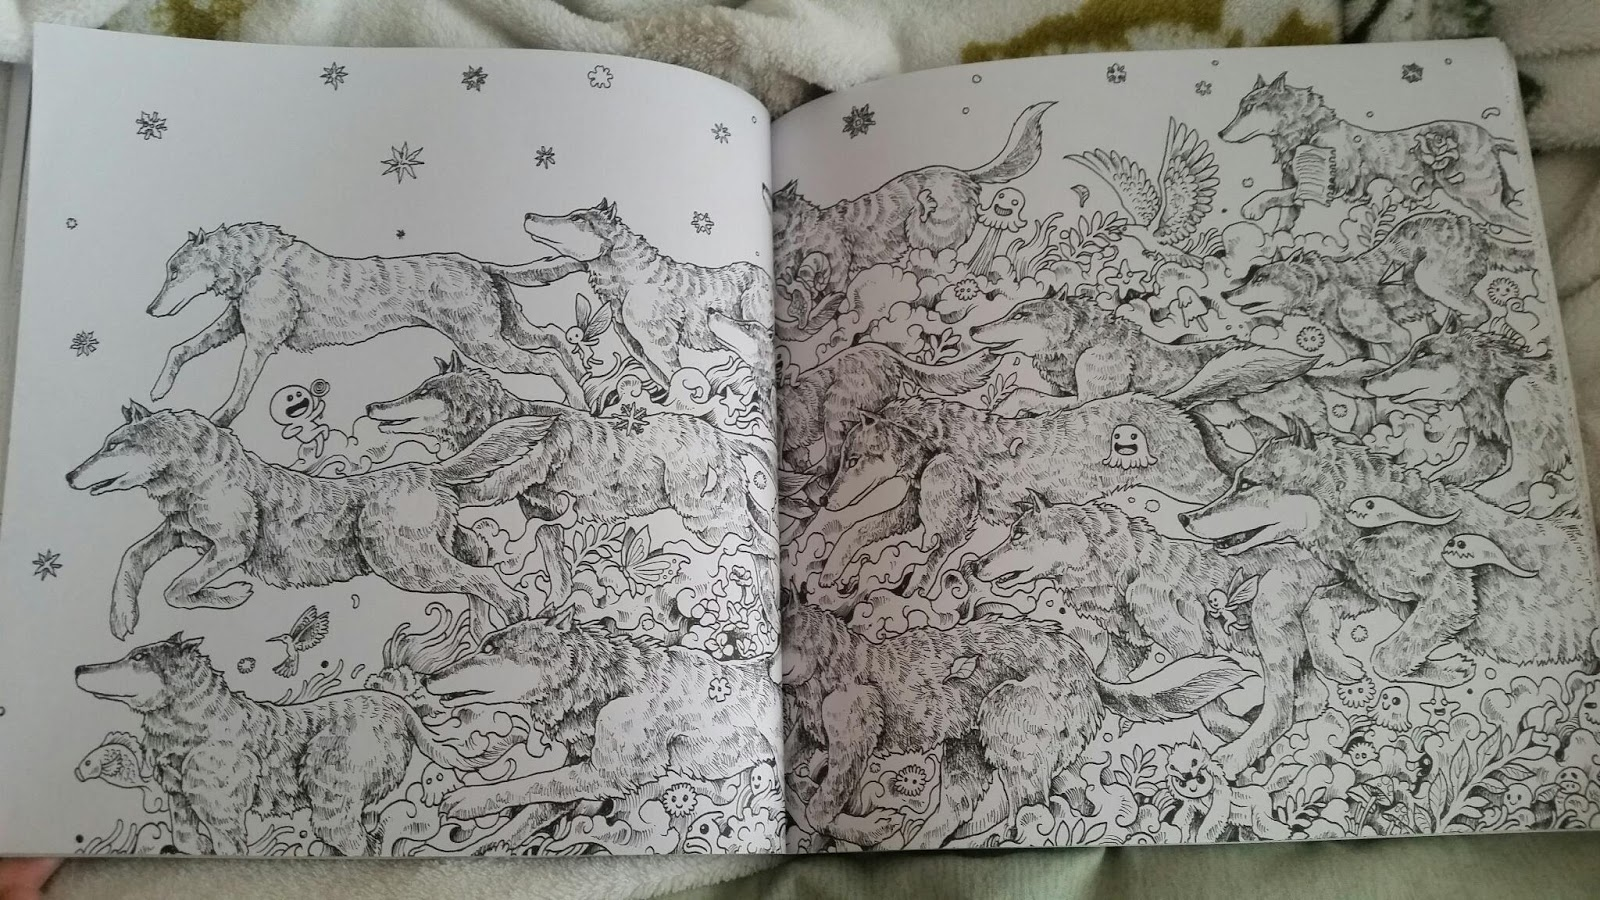 Animorphia an extreme coloring and search challenge by kerby rosanes - The Book I Have Which I Have Used For Artist Research Is Rosanes Animorphia An Extreme Colouring Book Search Challenge